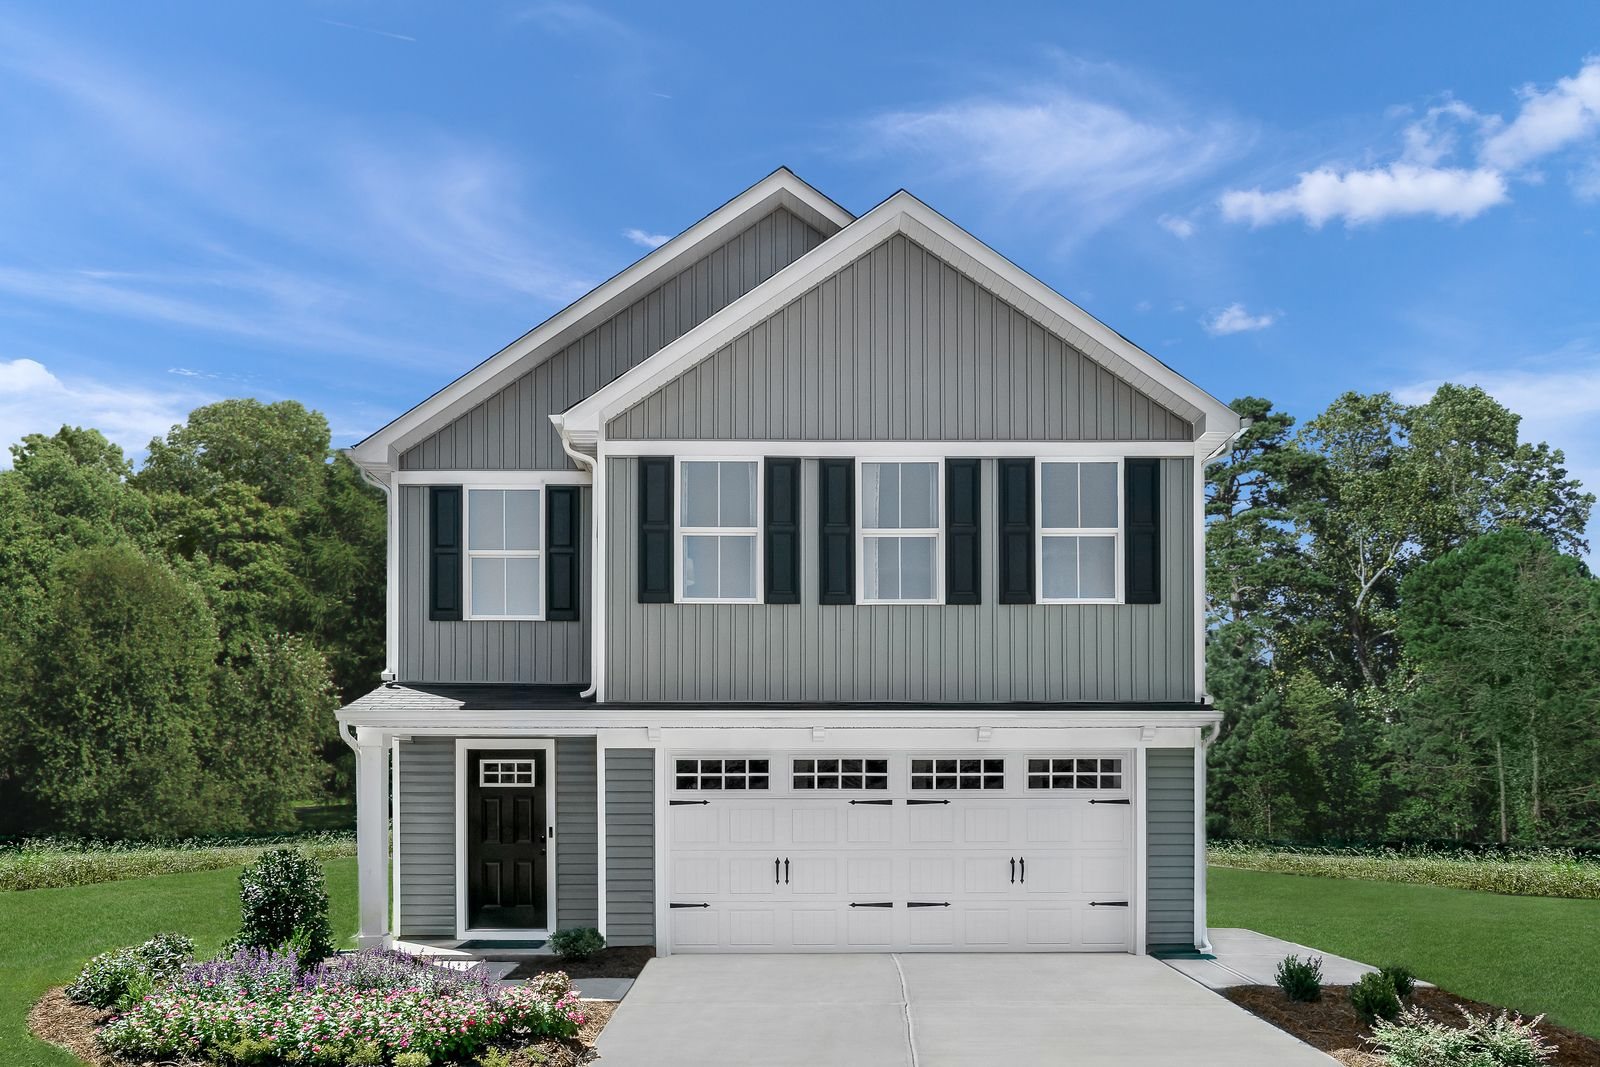 JOIN THE CHESTNUT RUN VIP LIST TODAY:Lowest priced 2-story homes in Marysville attached to Eljer Park, 3-5 beds, landscaped yard included, little to no money down. Close to I-270 & US33—upper $200s.Click here to join the VIP List!